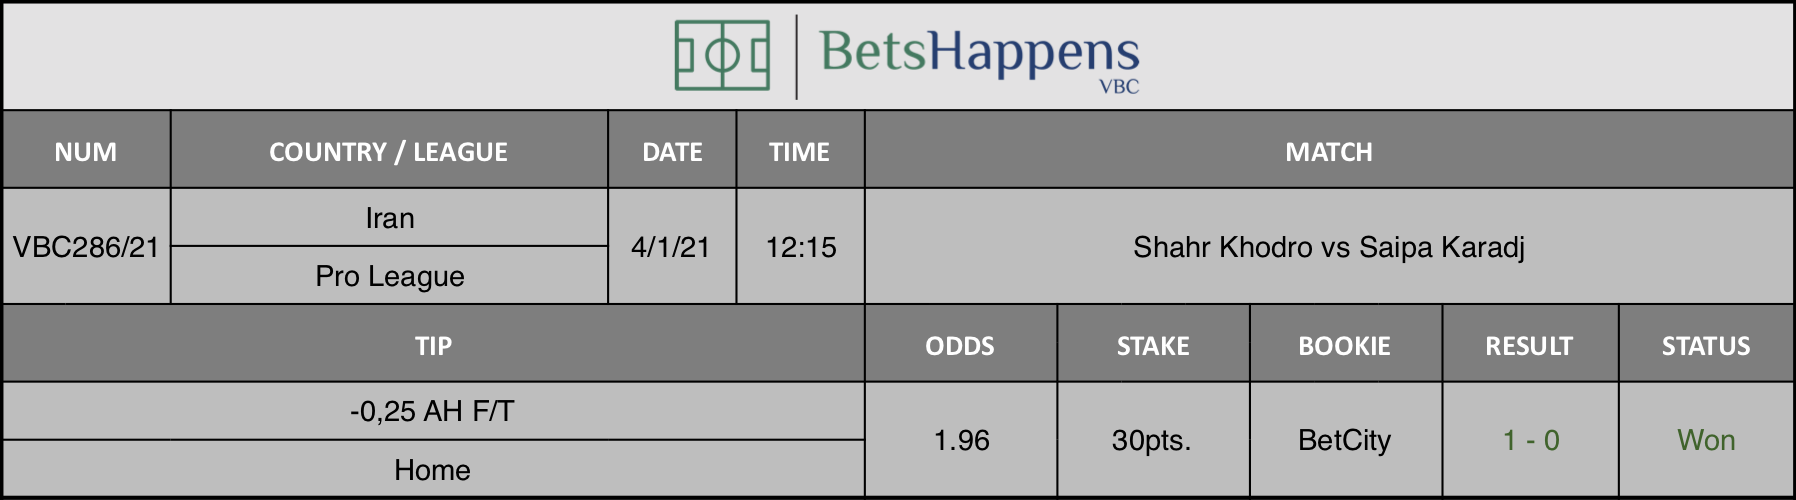 Results of our tip for the Shahr Khodro vs Saipa Karadj match where -0,25 AH F/T  Home is recommended.